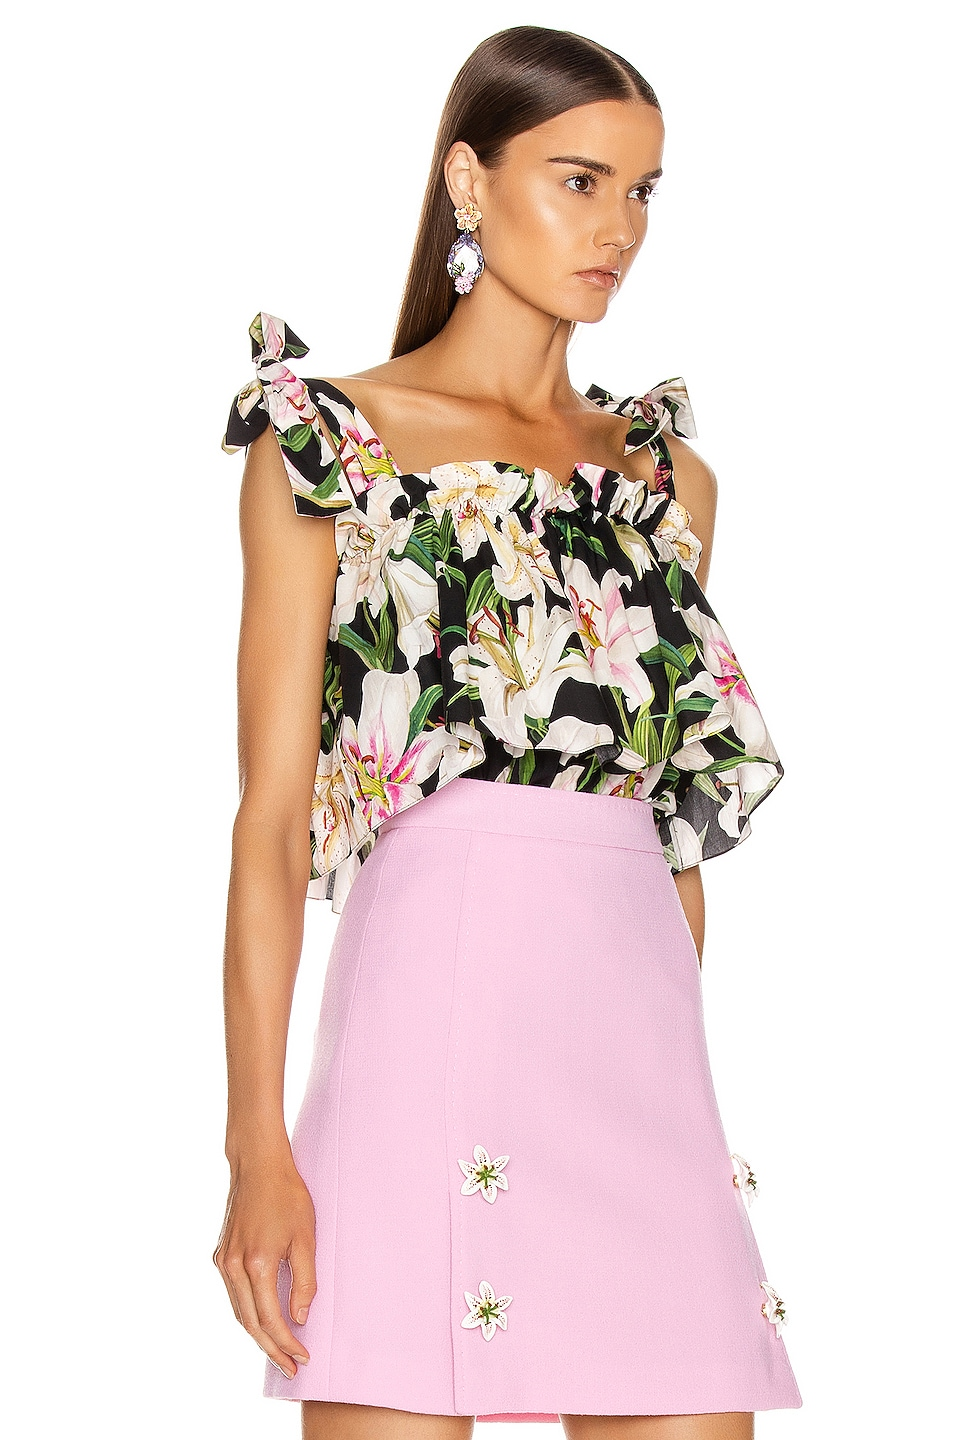 Image 2 of Dolce & Gabbana Floral Lilium Poplin Top in Black